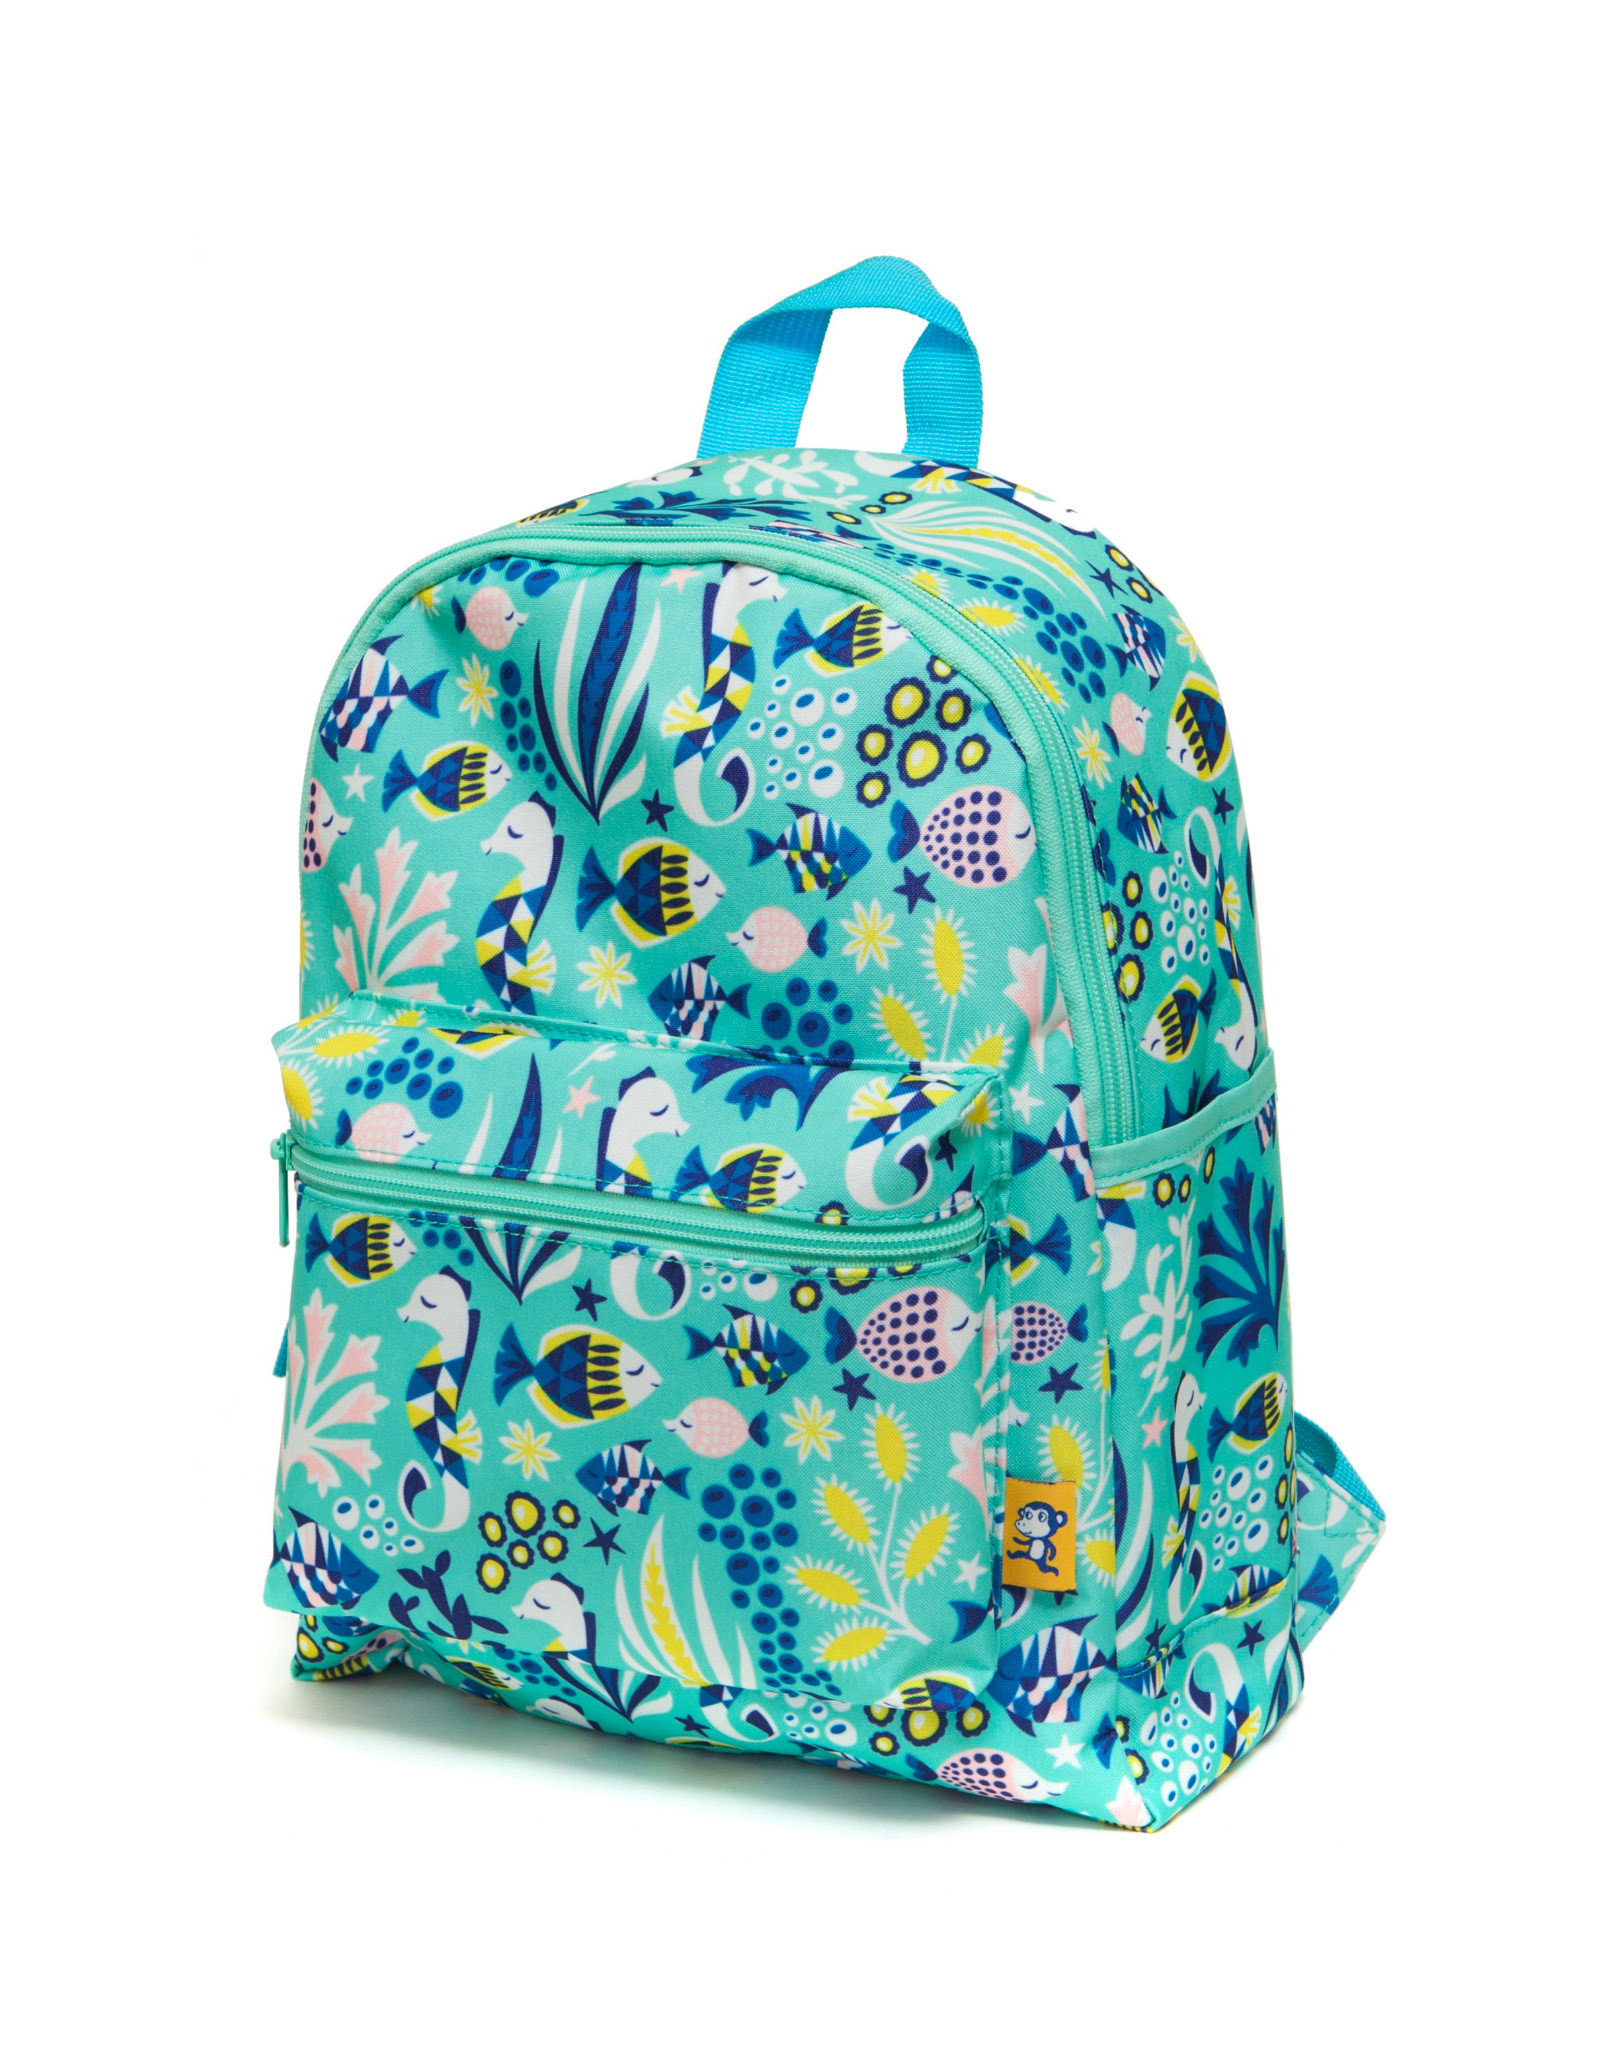 Petit Monkey Backpack - Under the sea green